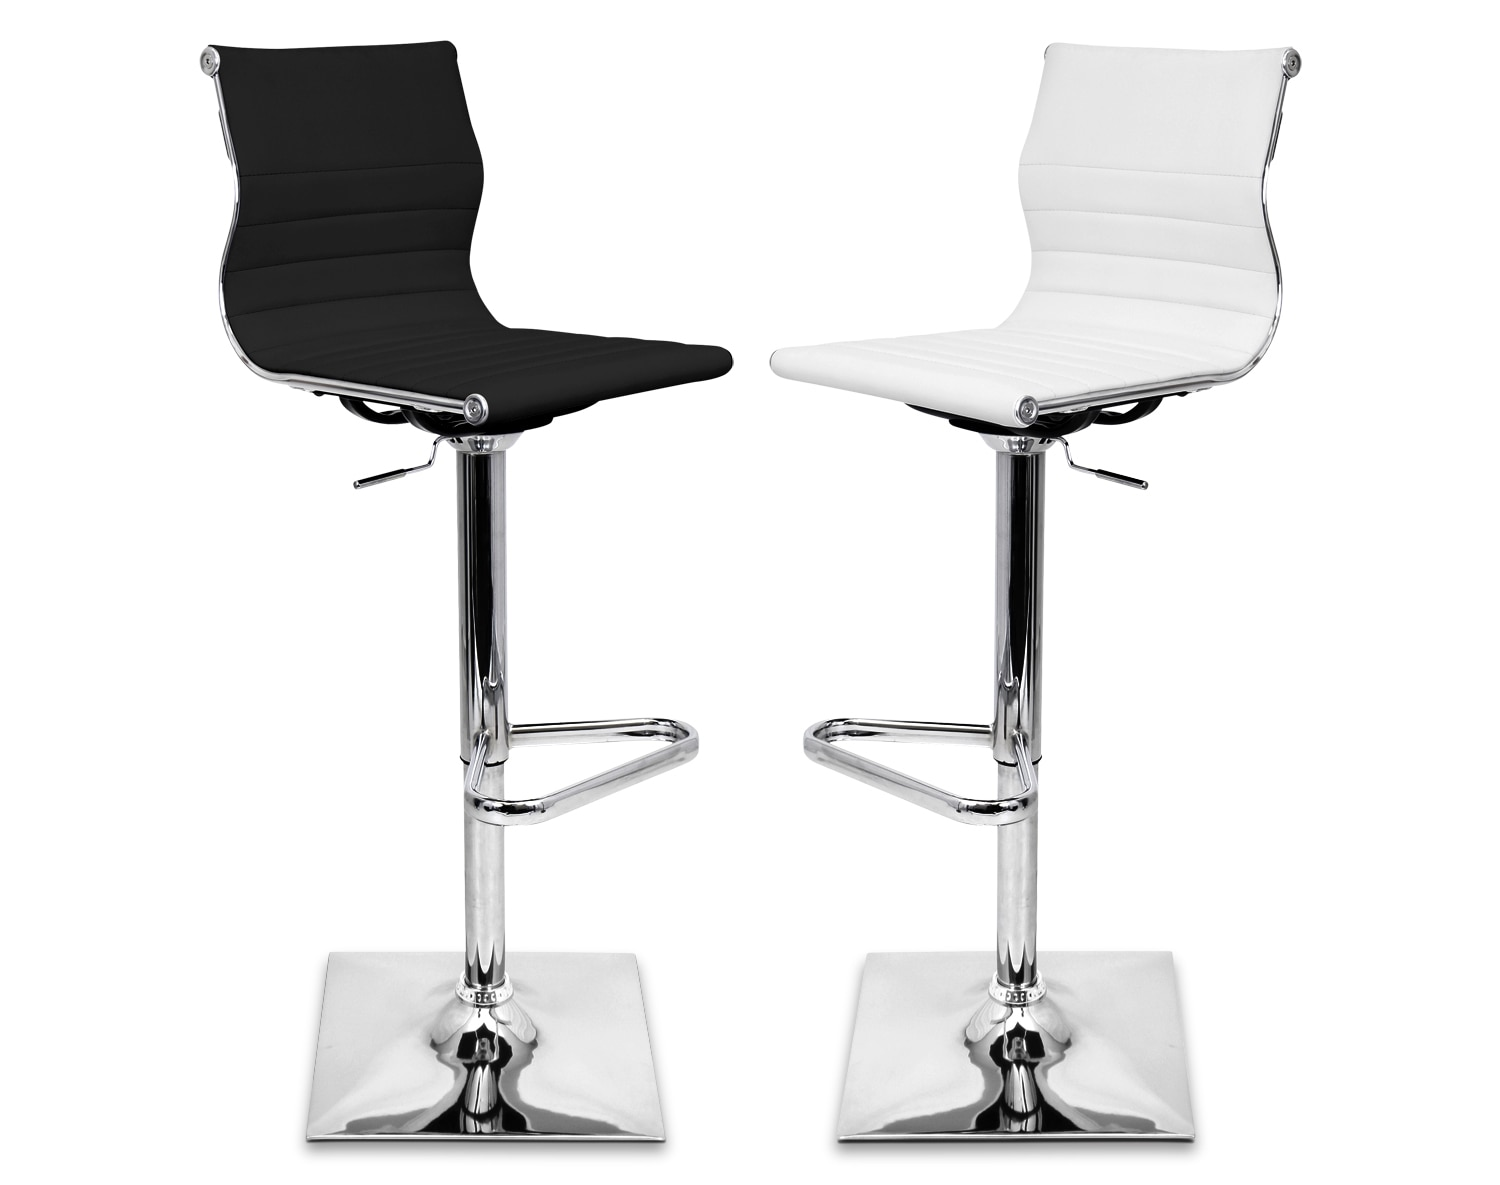 The Pierce Adjustable Barstool Collection